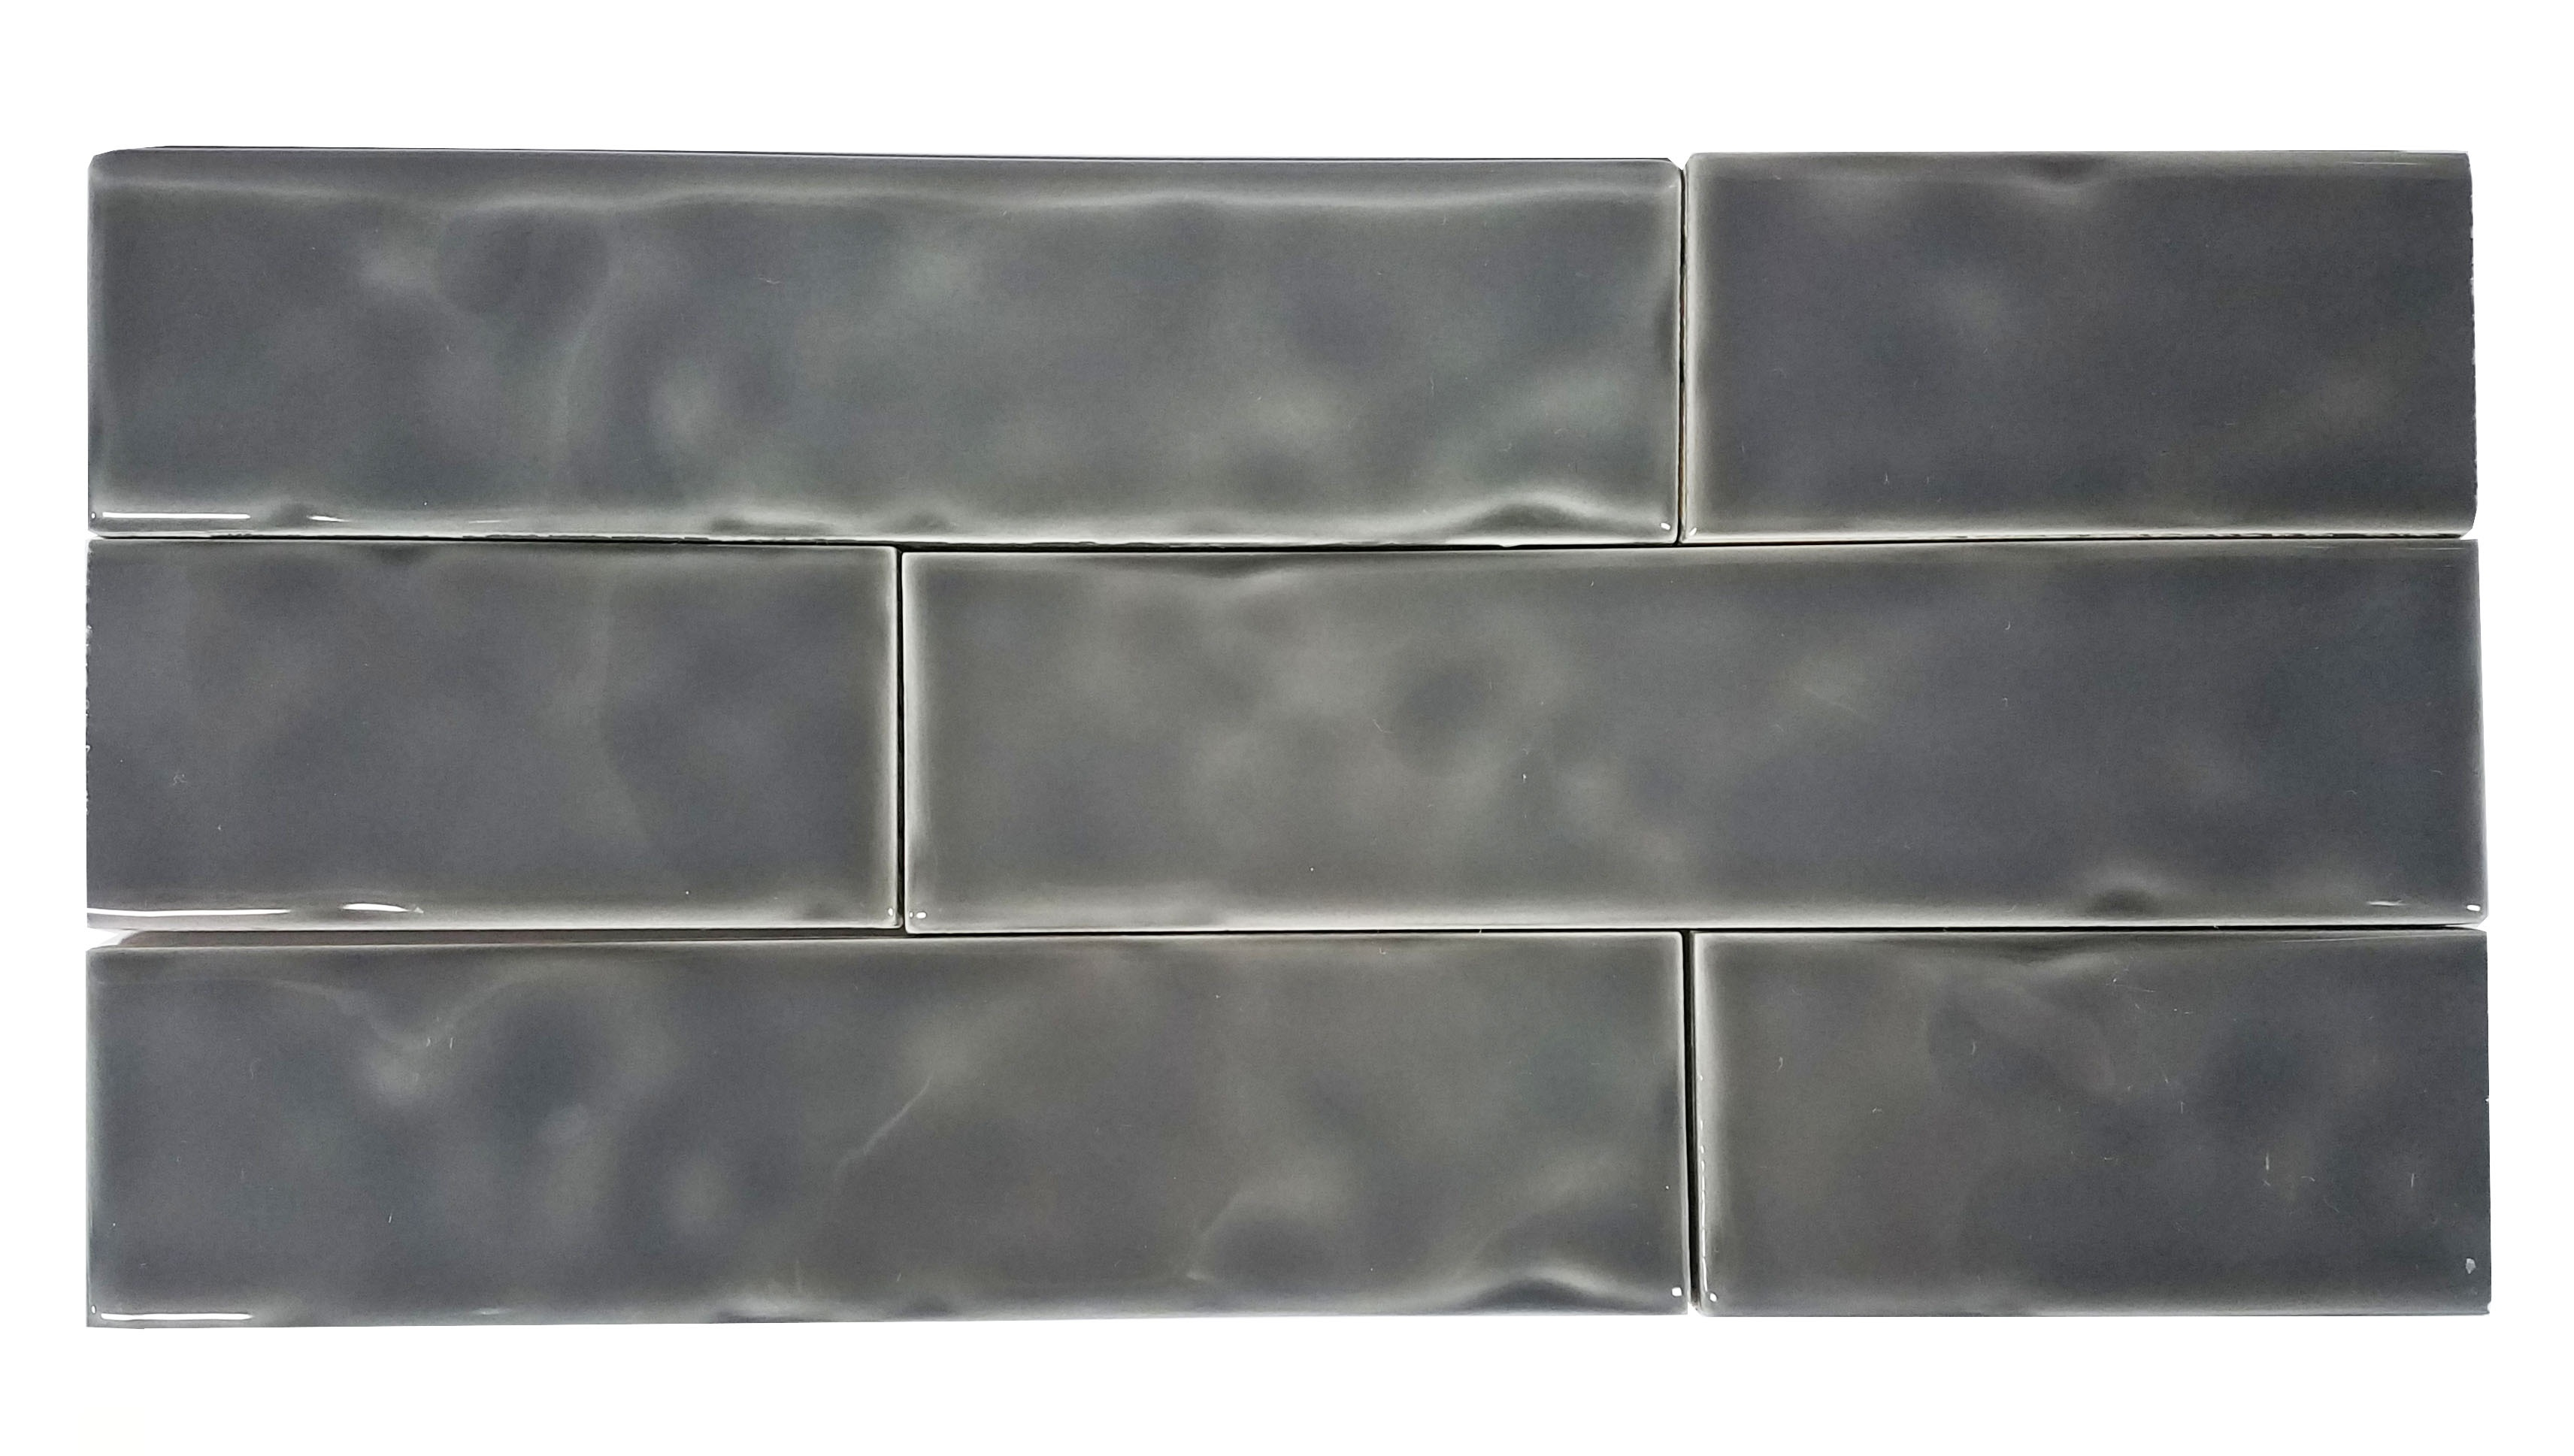 2 x 8 Chelsea Graphite Ceramic Wall subway